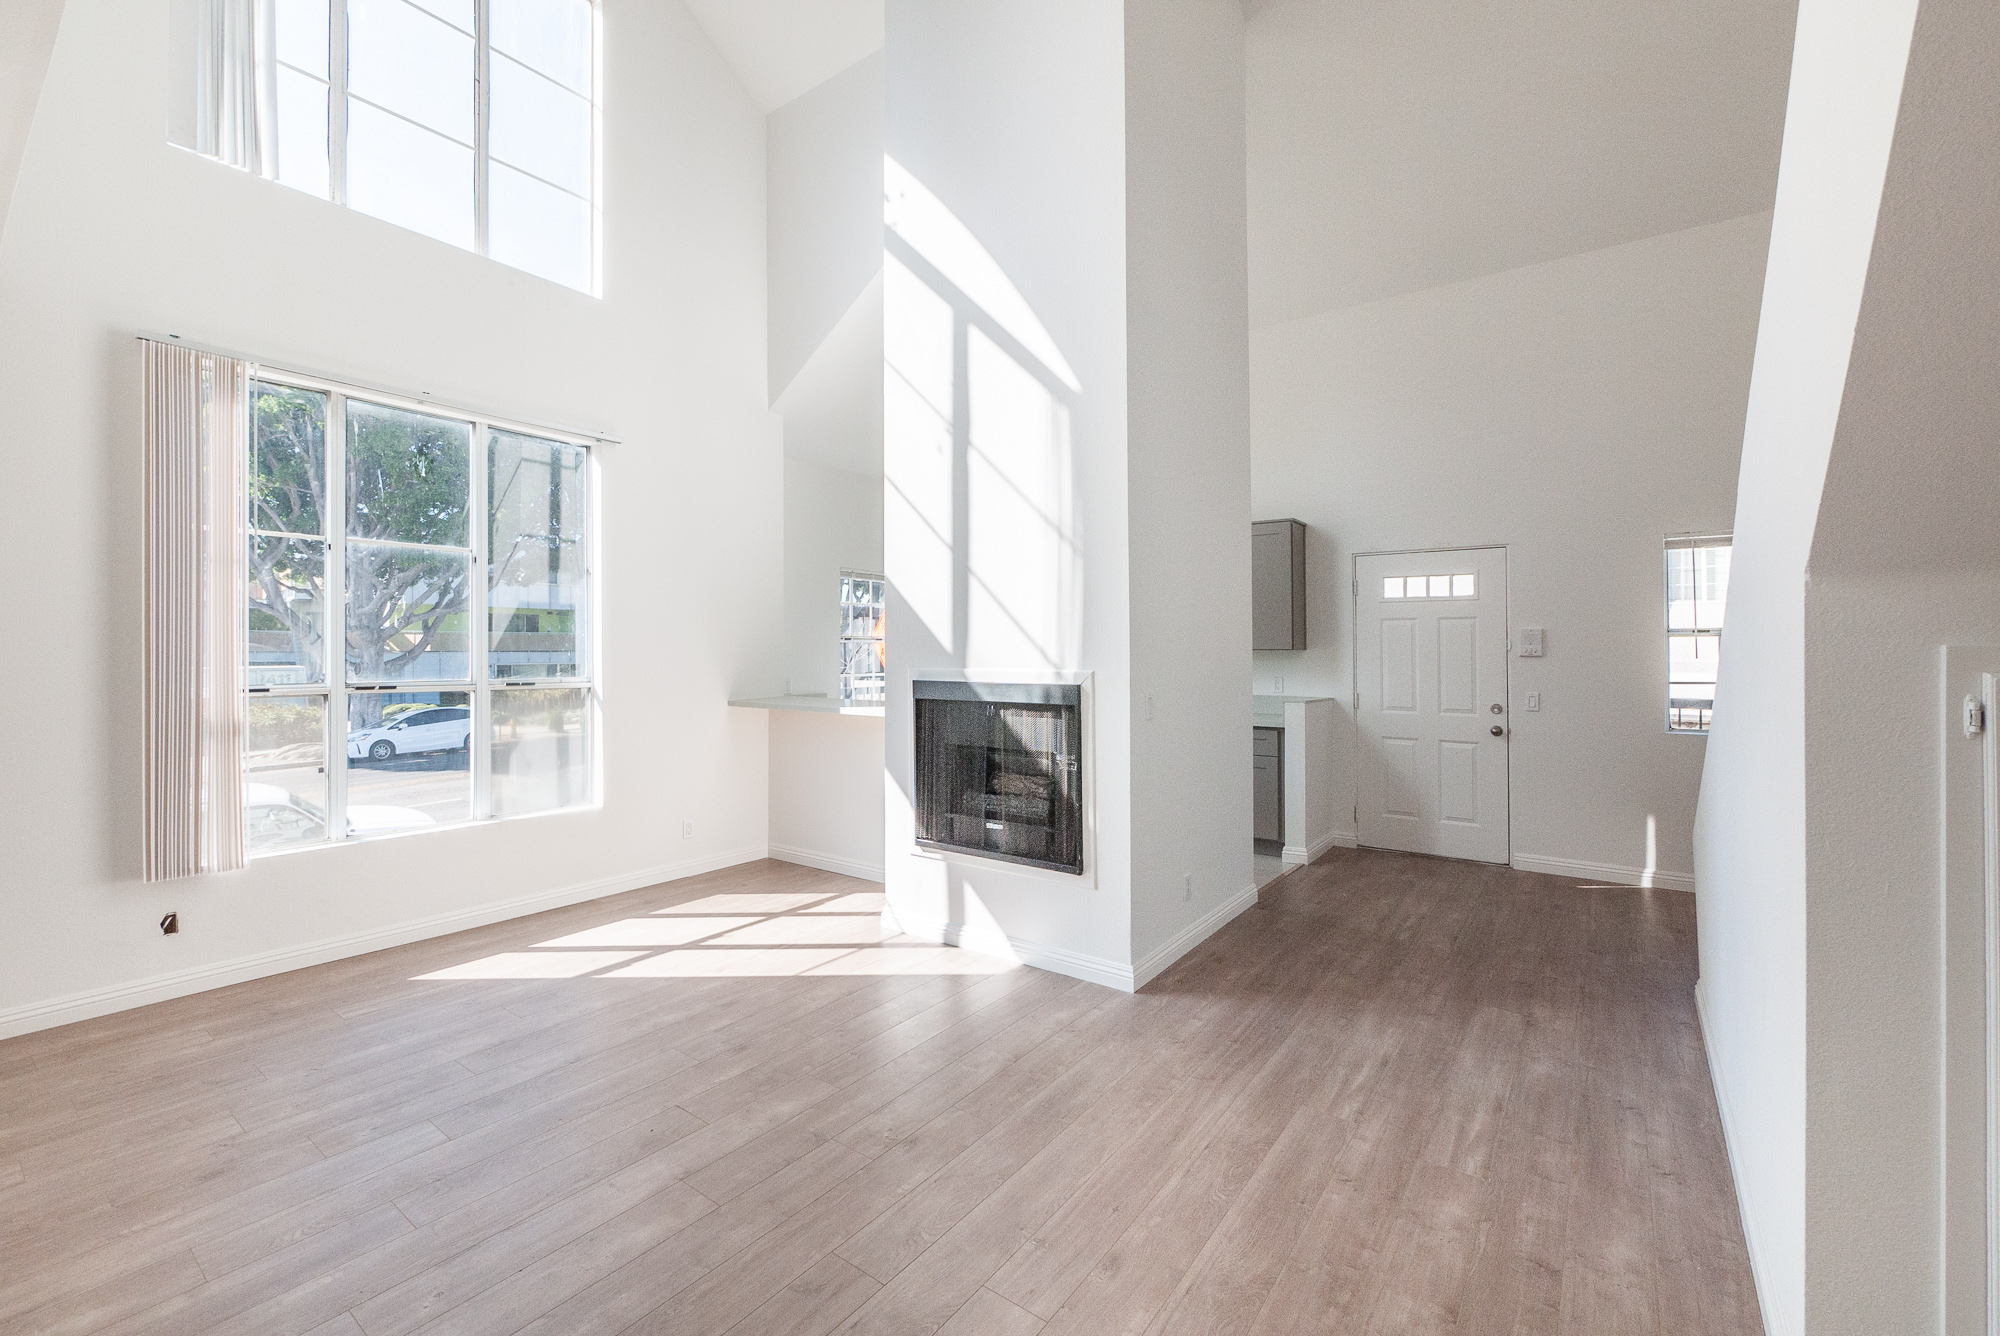 Two Story 2BD / 2BA with Loft Layout in Renovated Building | Central Heat & A/C | Two Gated Parking Spots